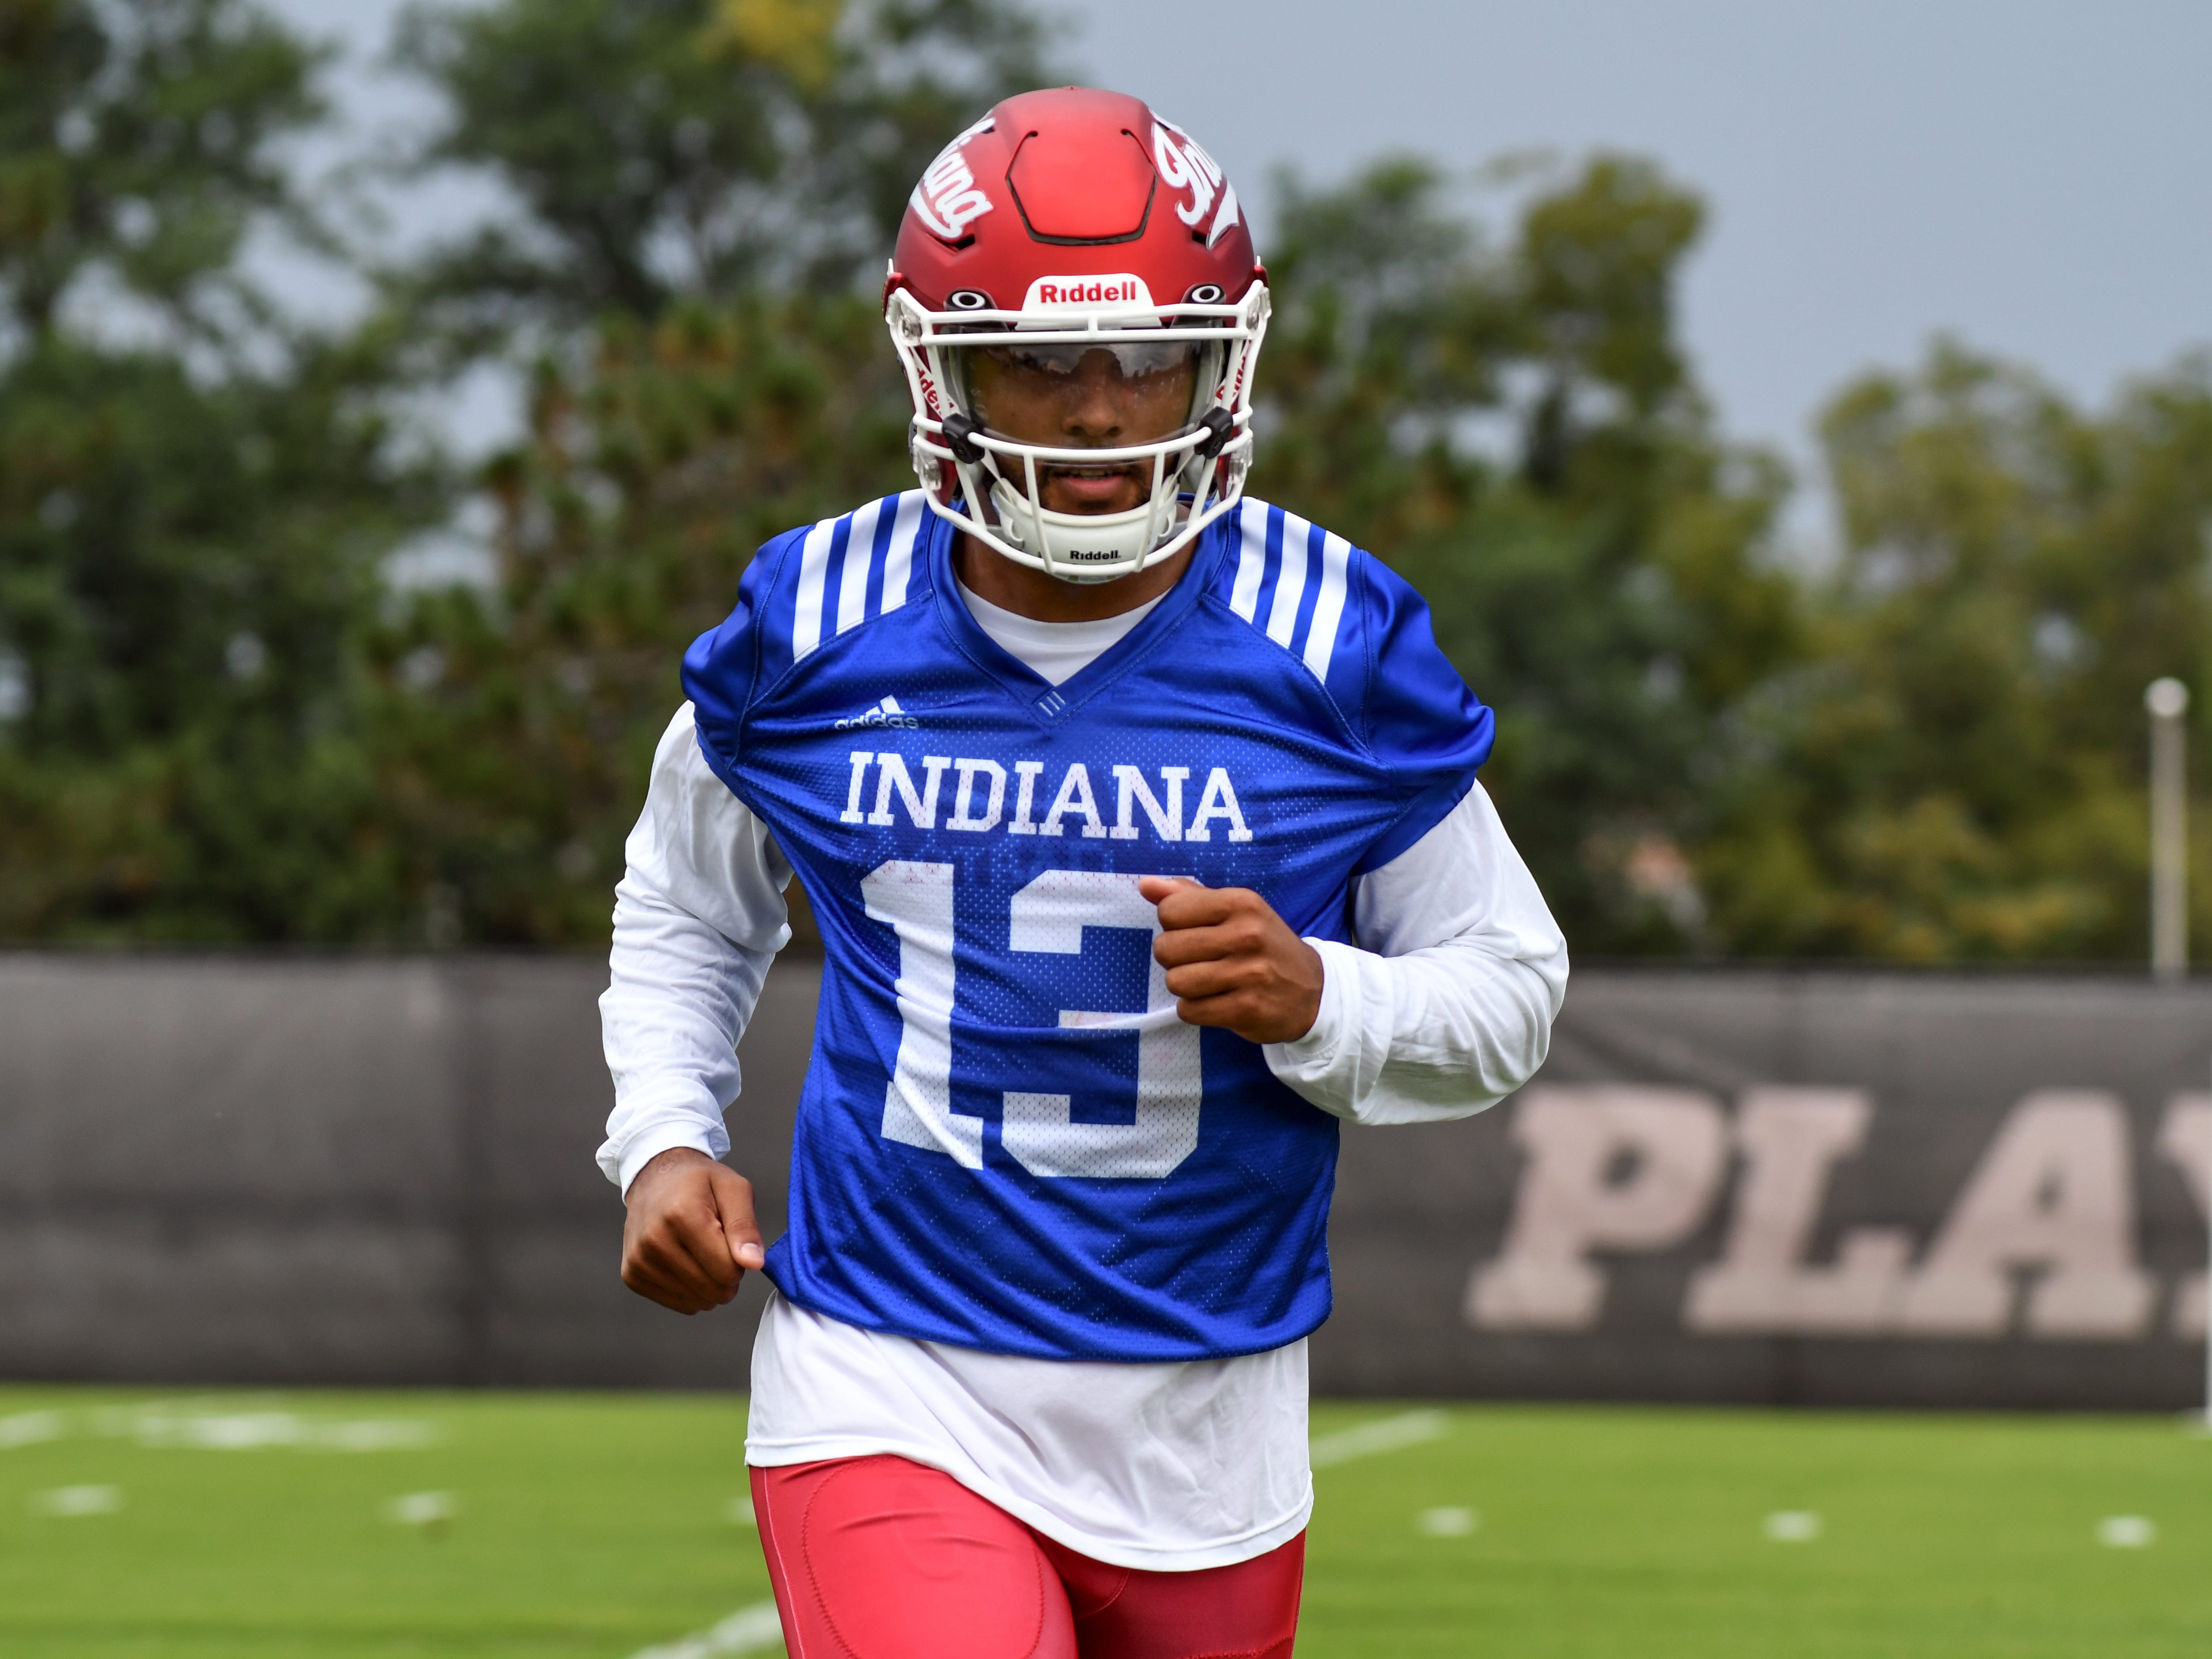 Indiana Hoosiers quarterback Brandon Dawkins (13) jogs off the field during IU's practice at Mellencamp Pavilion in Bloomington, Ind., on Friday, August 3, 2018.